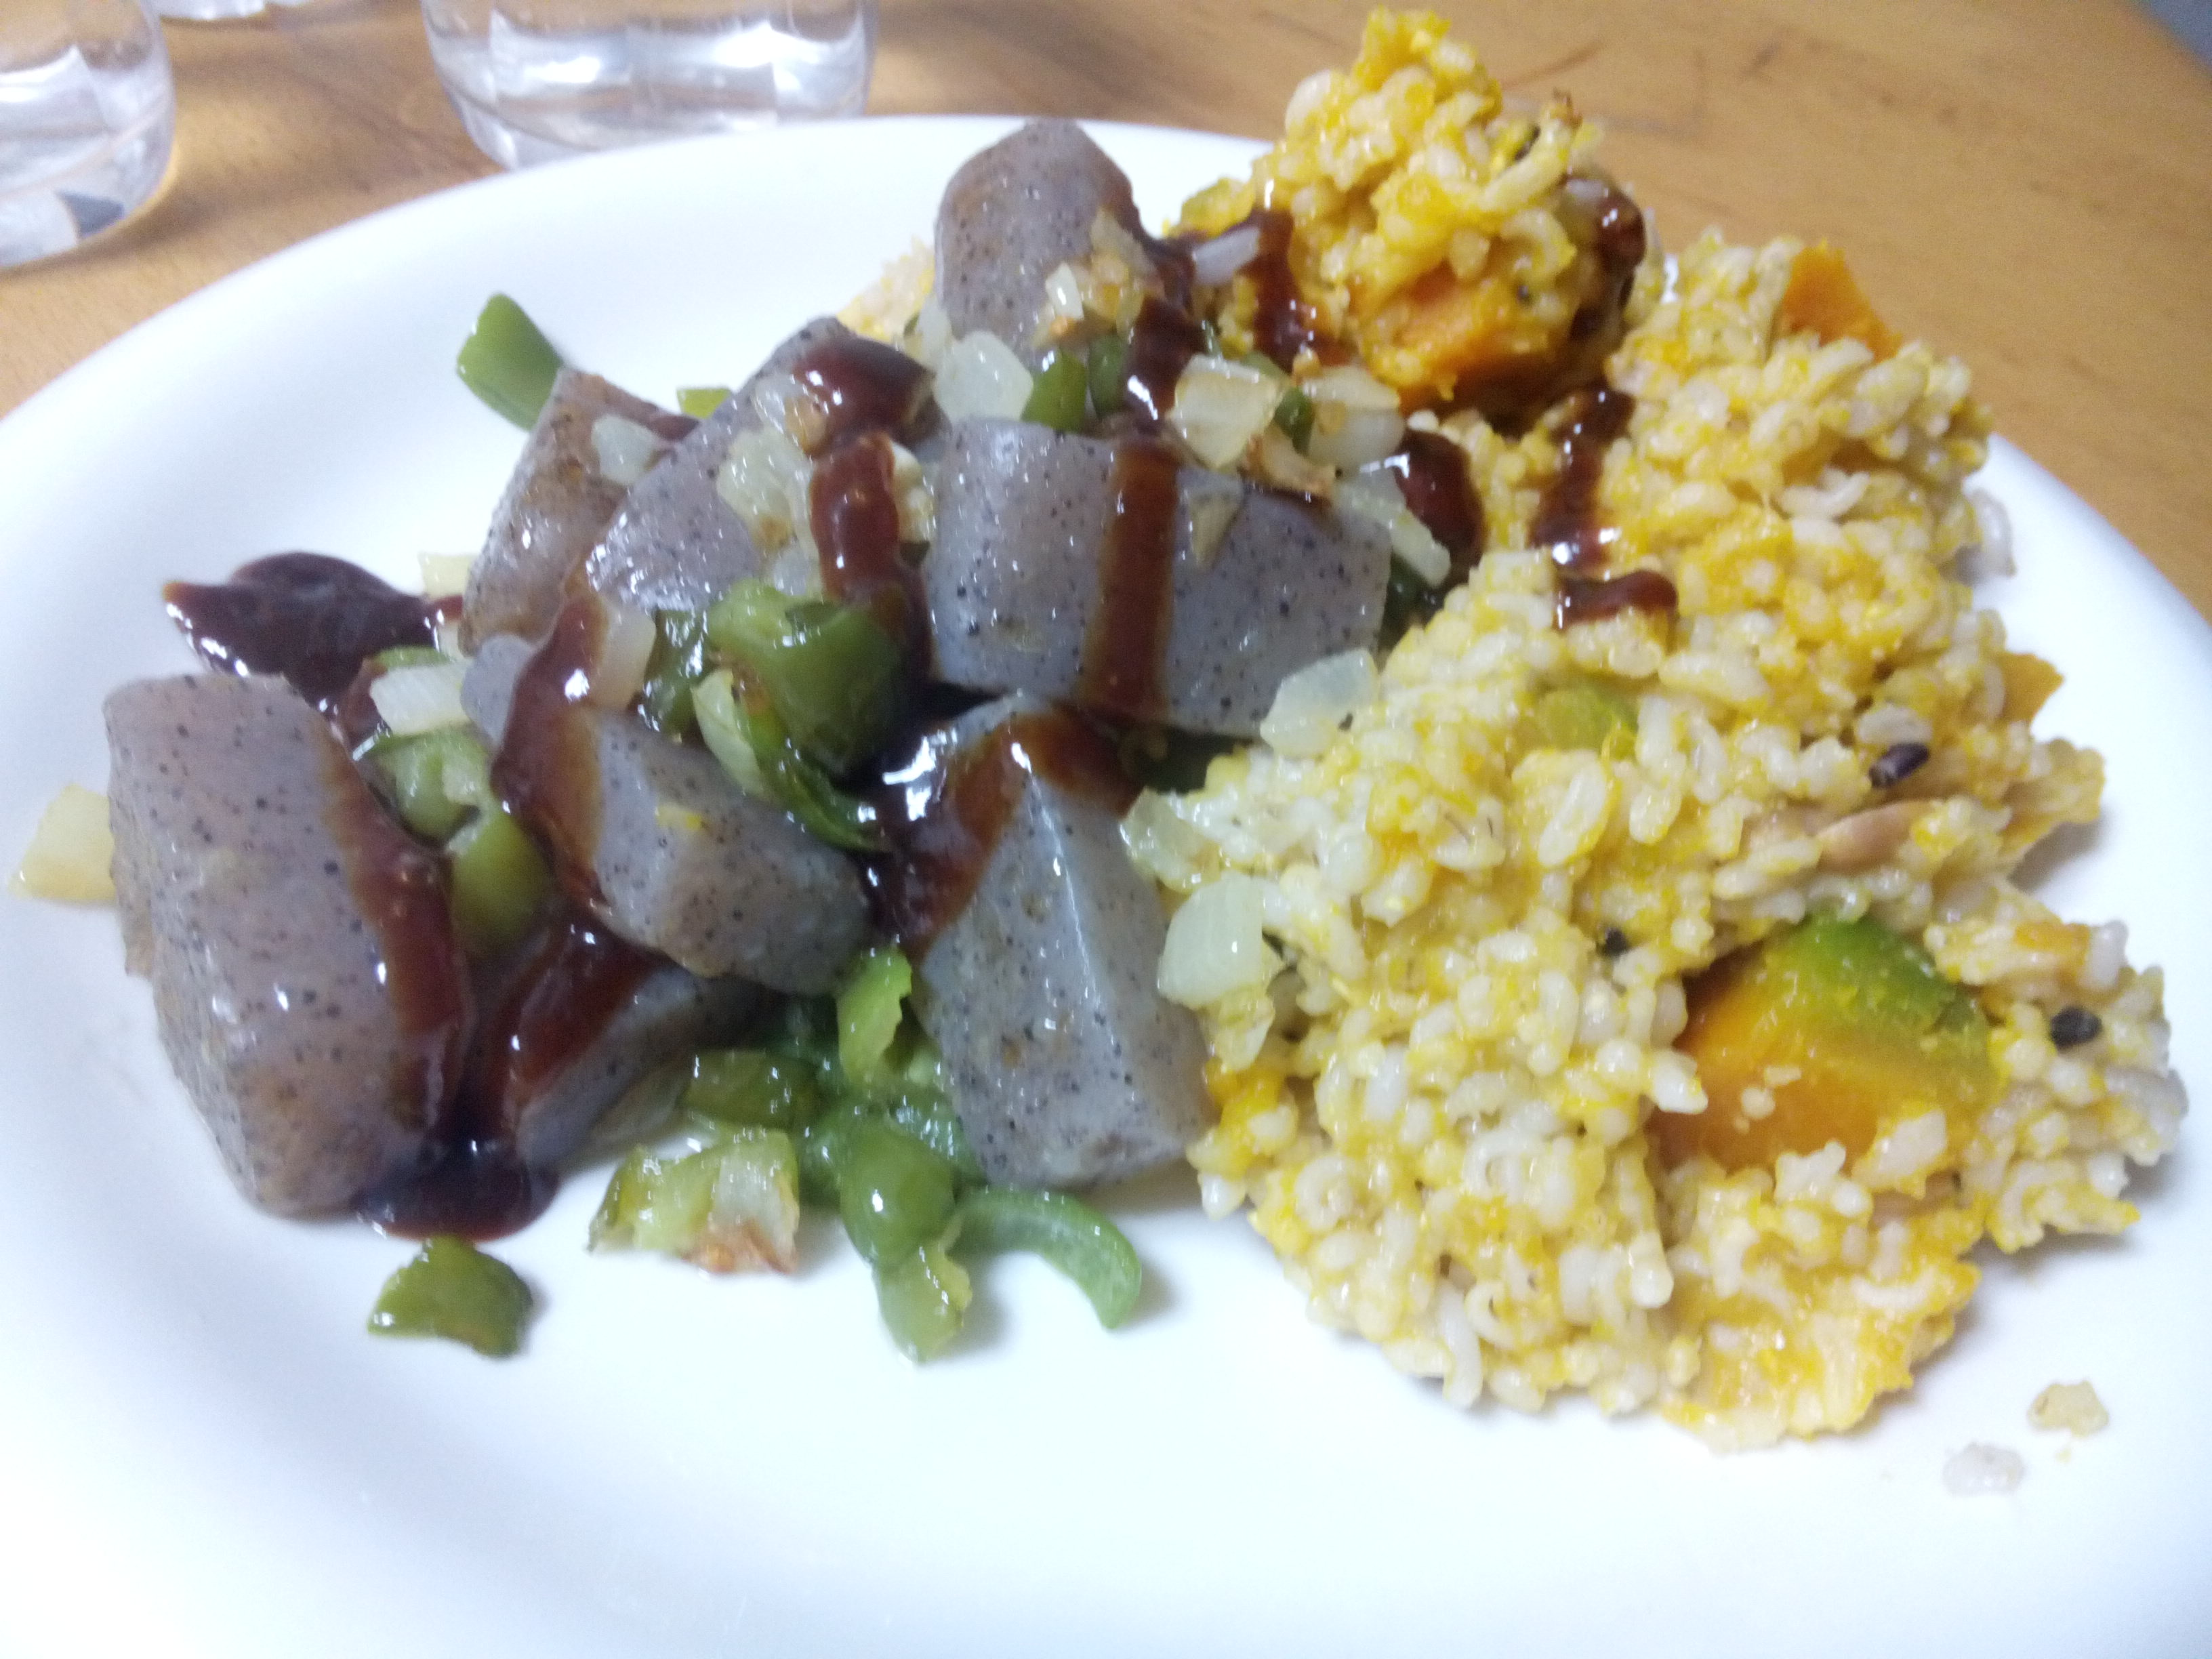 Prepared konnyaku (boiled then lightly fried), with sauce drizzled, and pumpkin rice.